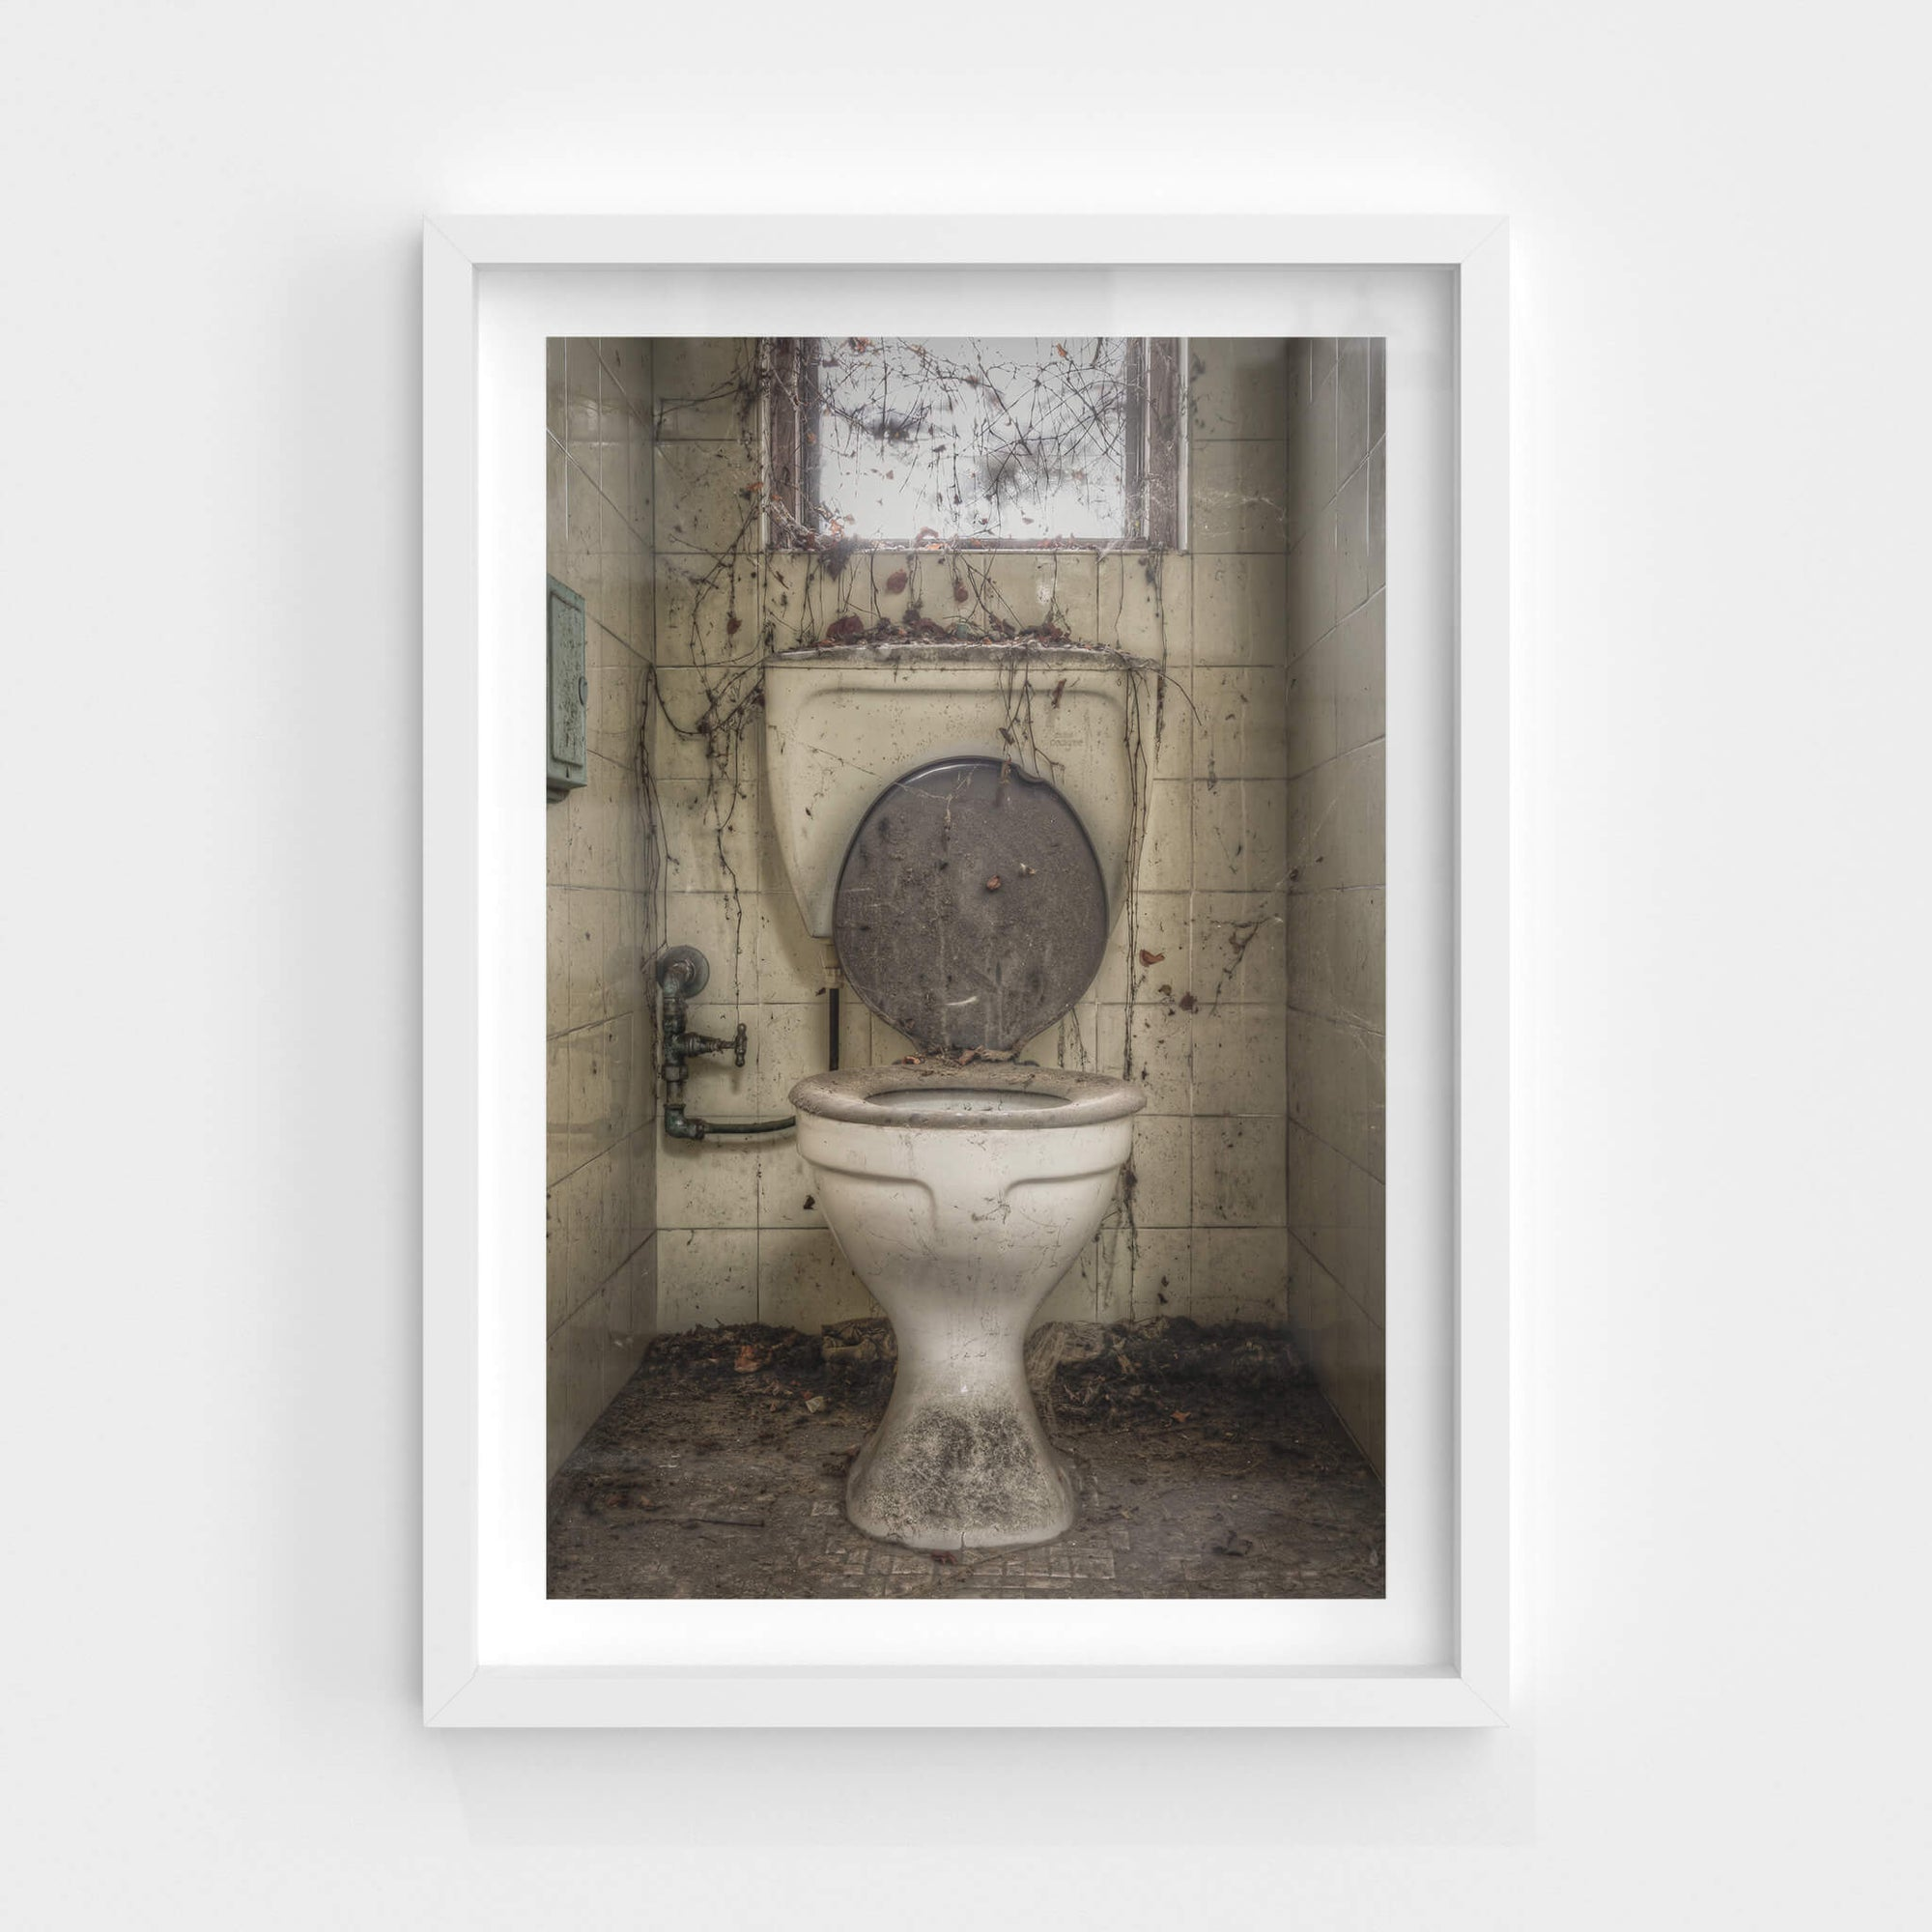 Toilet | Terminus Hotel Fine Art Print - Lost Collective Shop